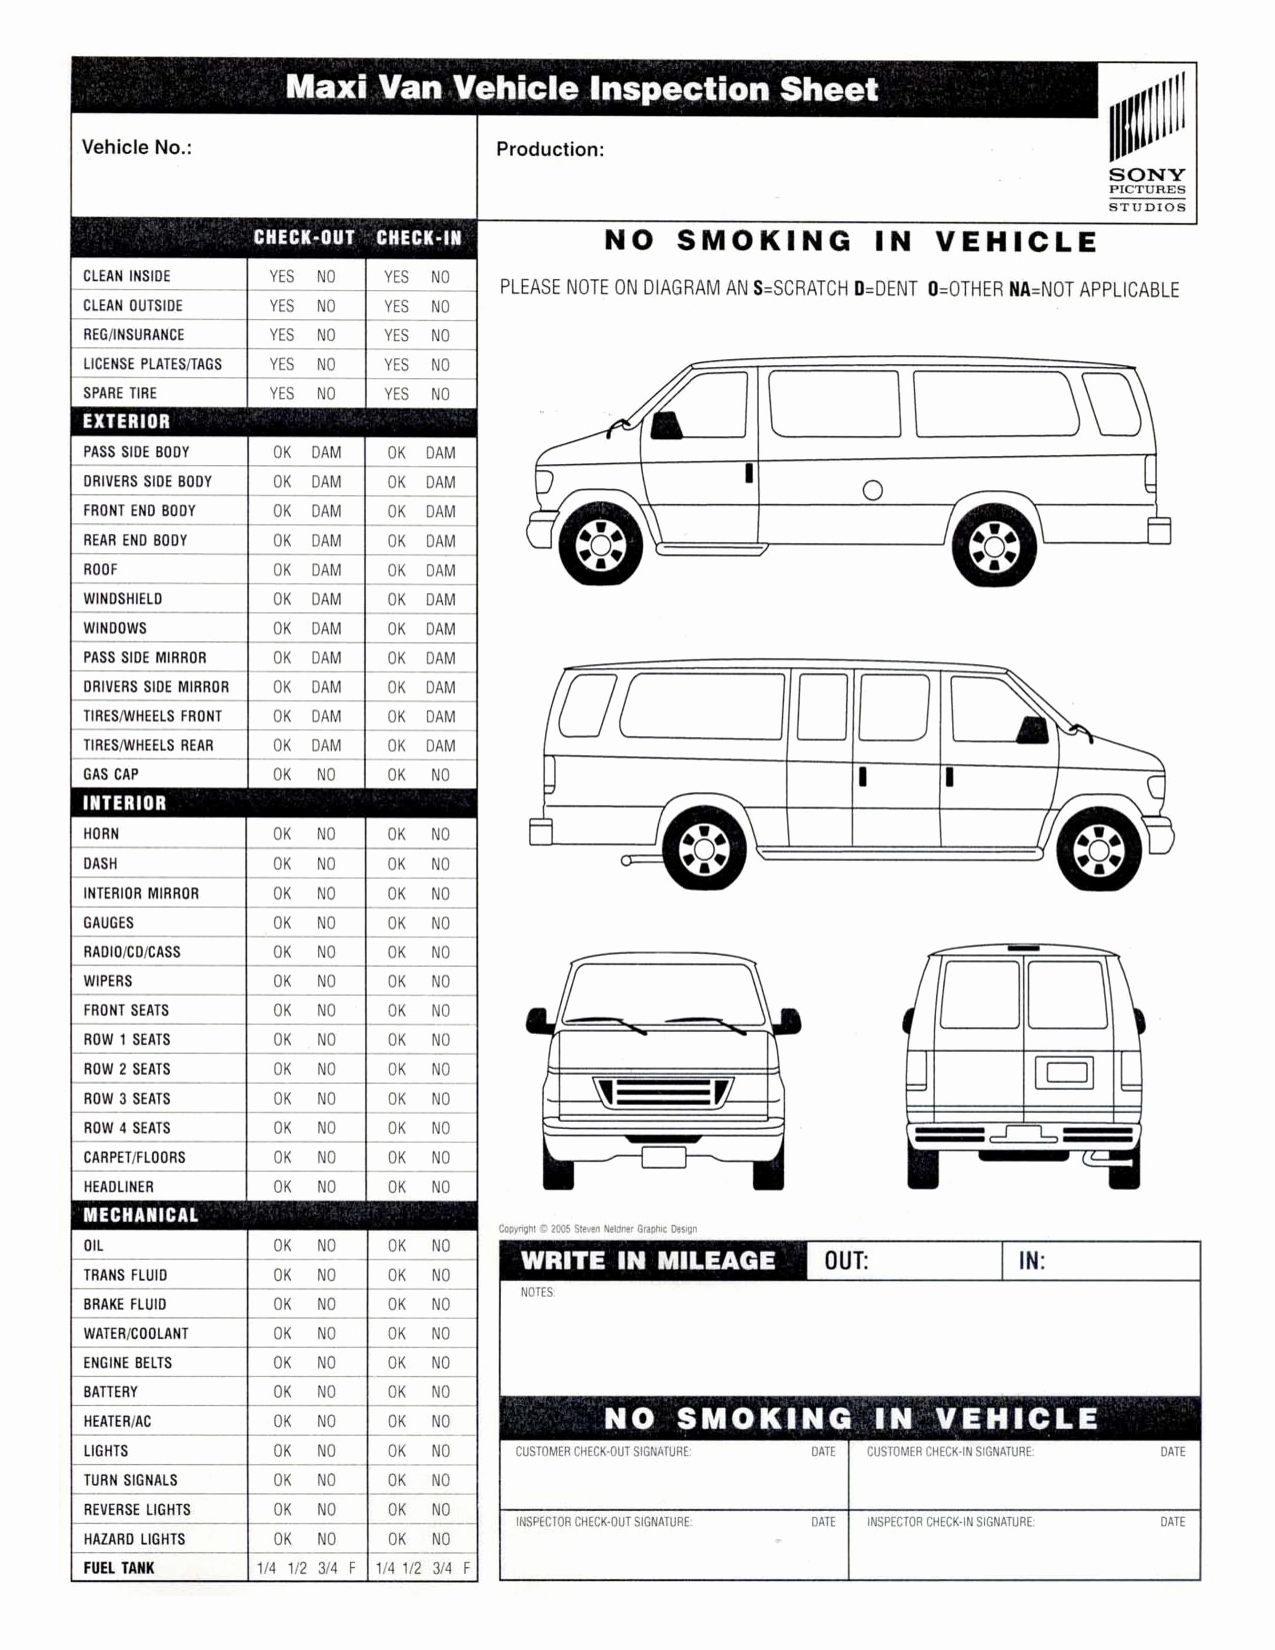 Vehicle Inspection Sheet Template Best Of 9 Best Of Van Diagram Template Gmc Van Outline